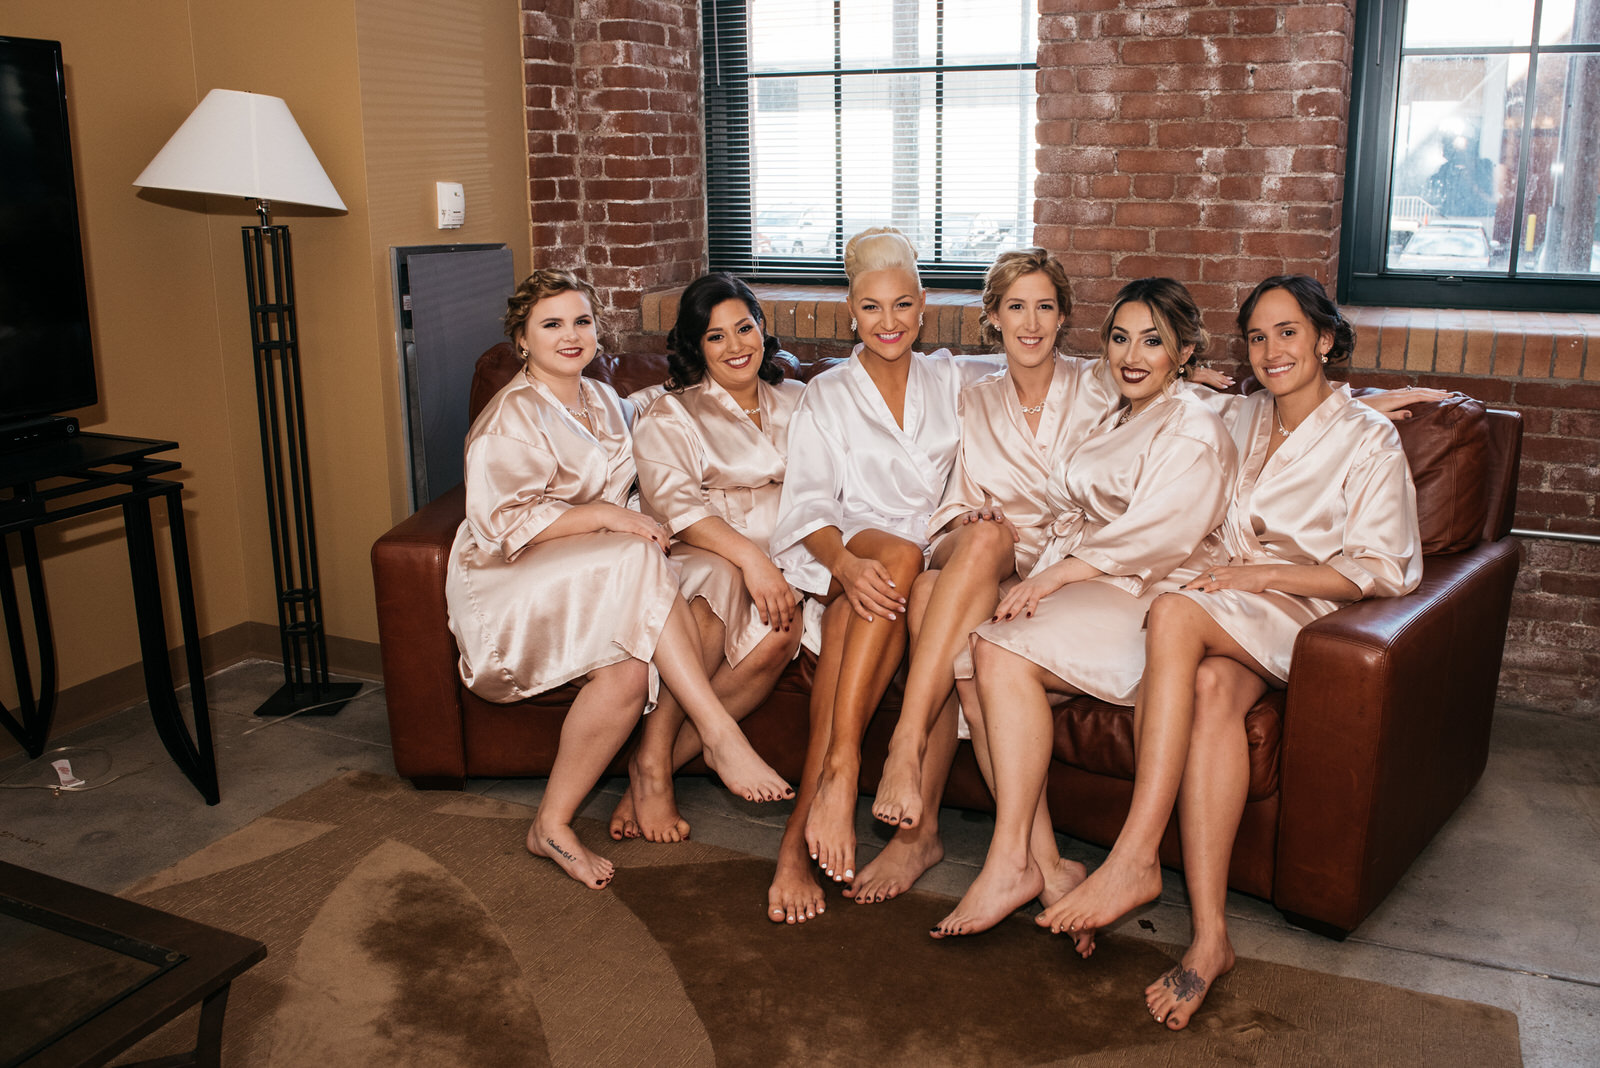 hilton_garden_inn_southpointe_pittsburgh_weddings_18.jpg